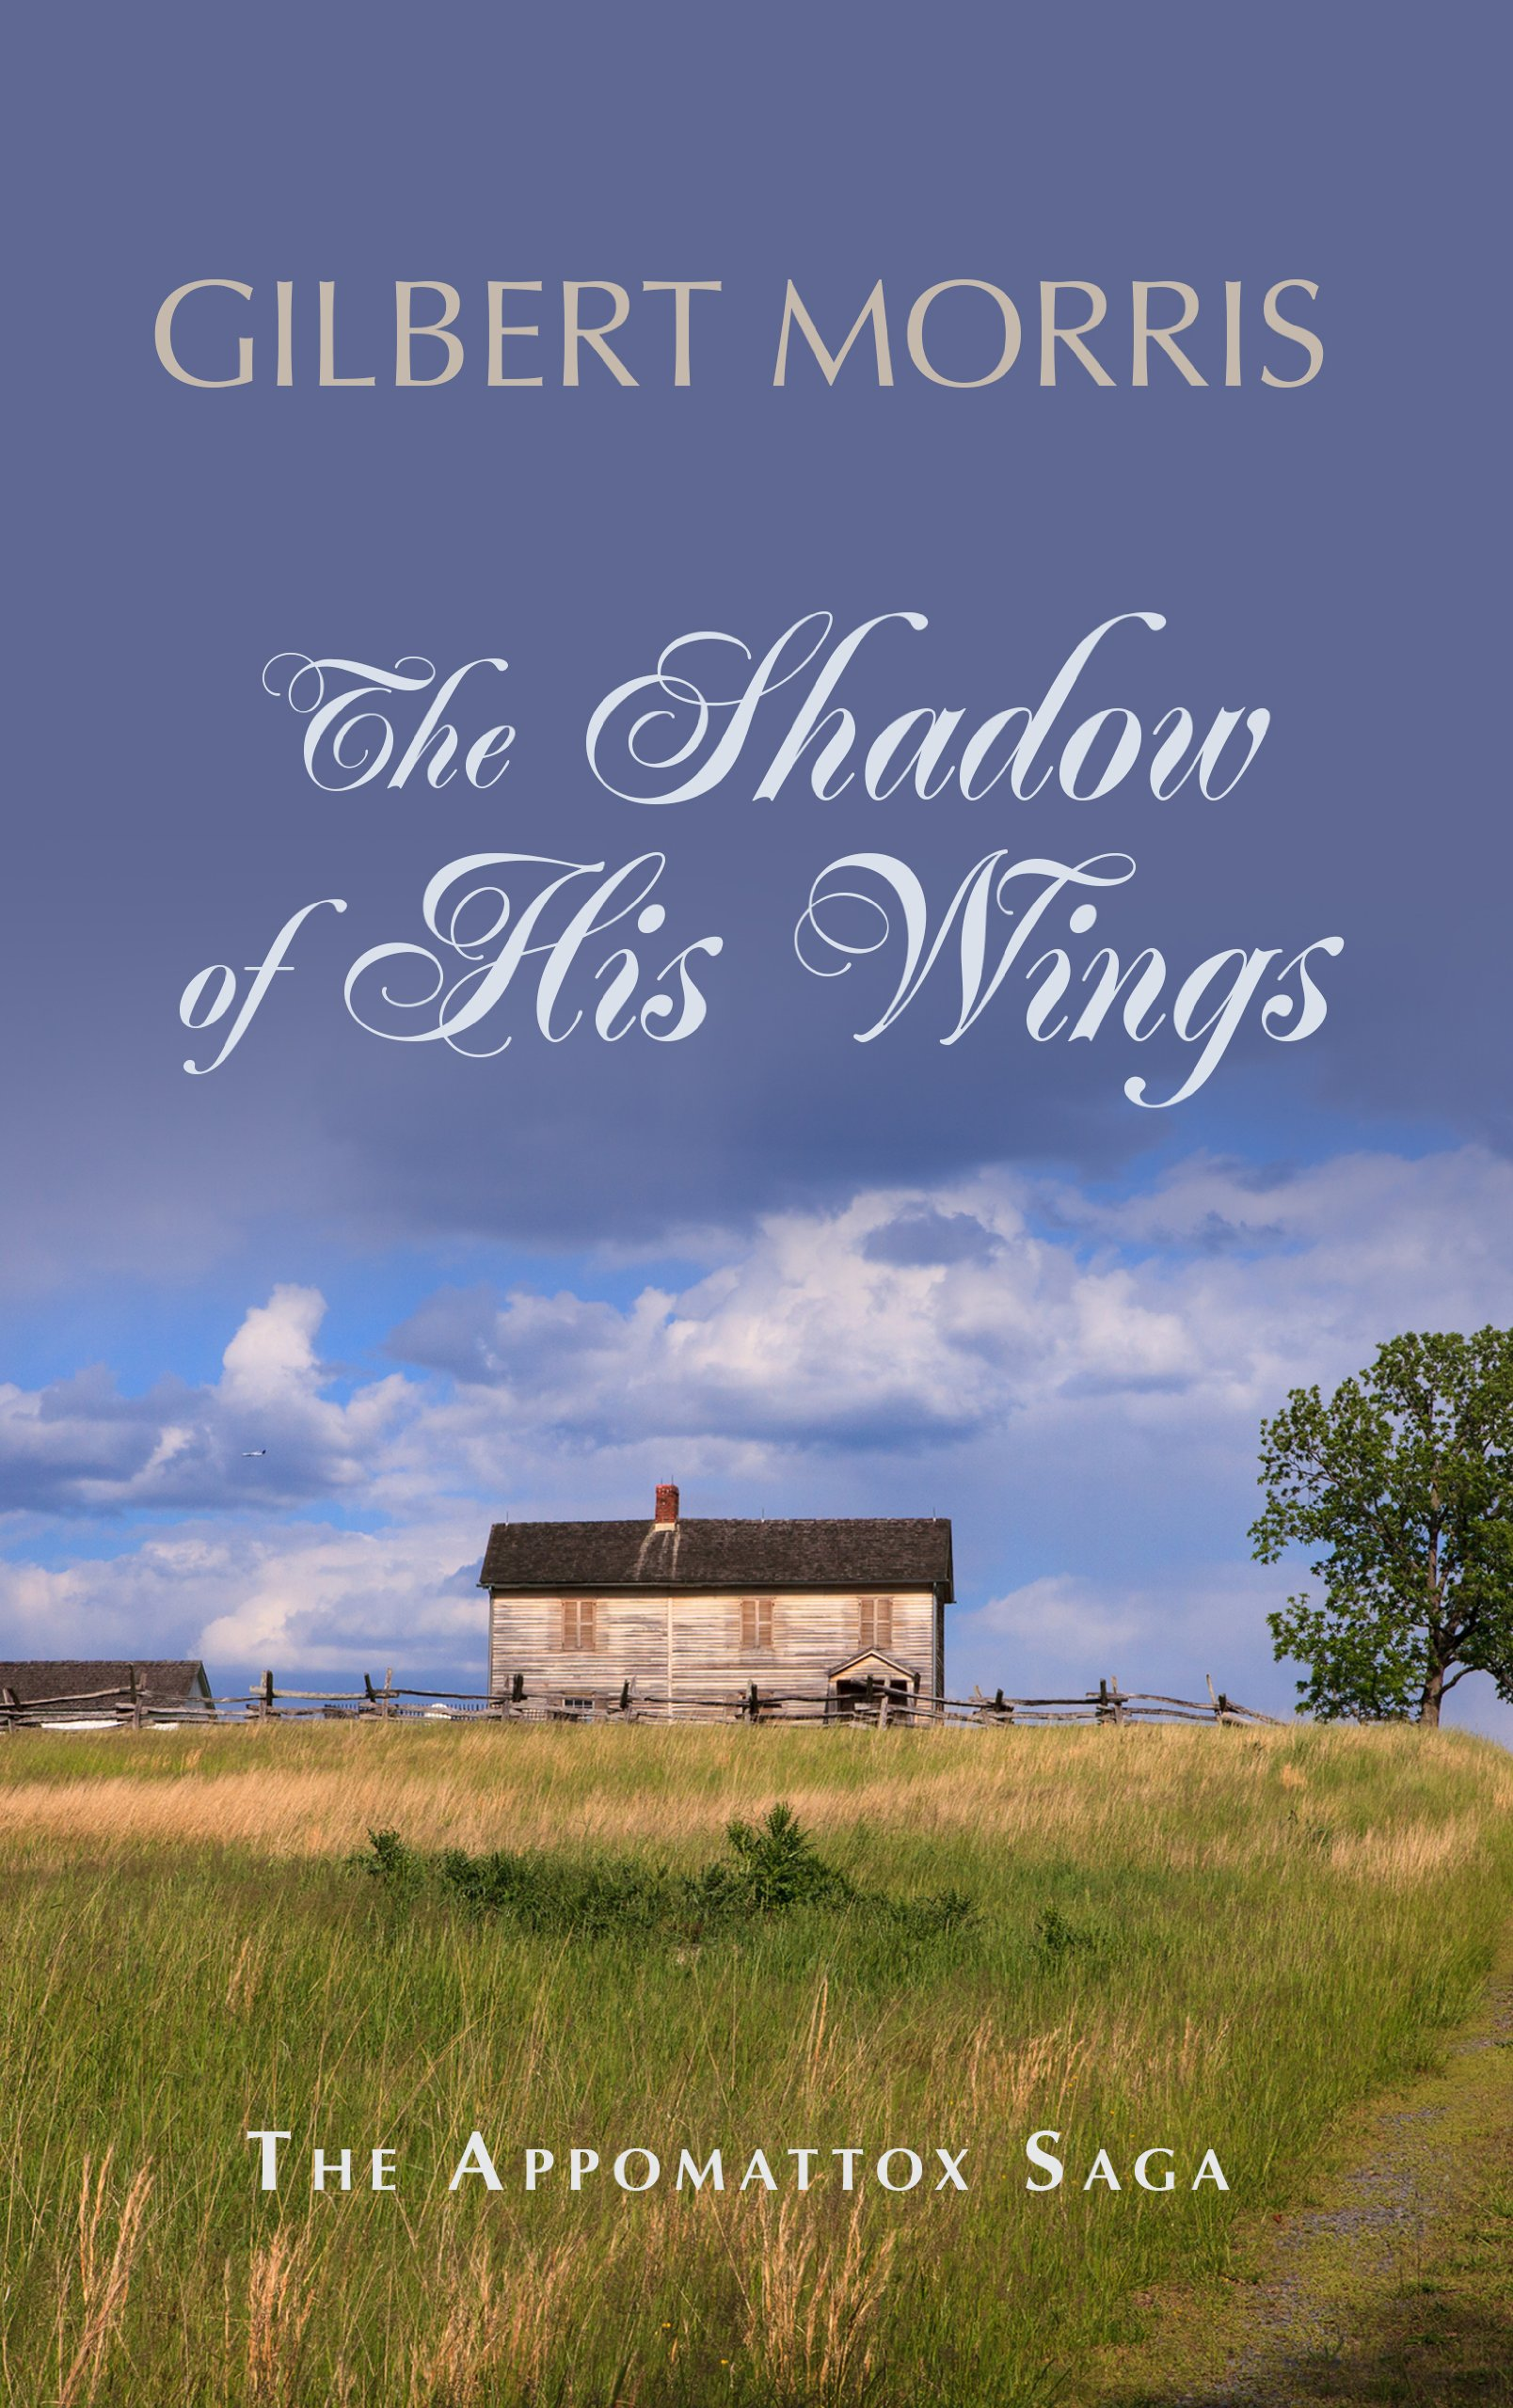 The Shadow of His Wings: 1861 - 1863 Adventure and Romance Thrive During the War Between the States (Thorndike Press Large Print Christian Historical Fiction: Appomattox Saga) ebook